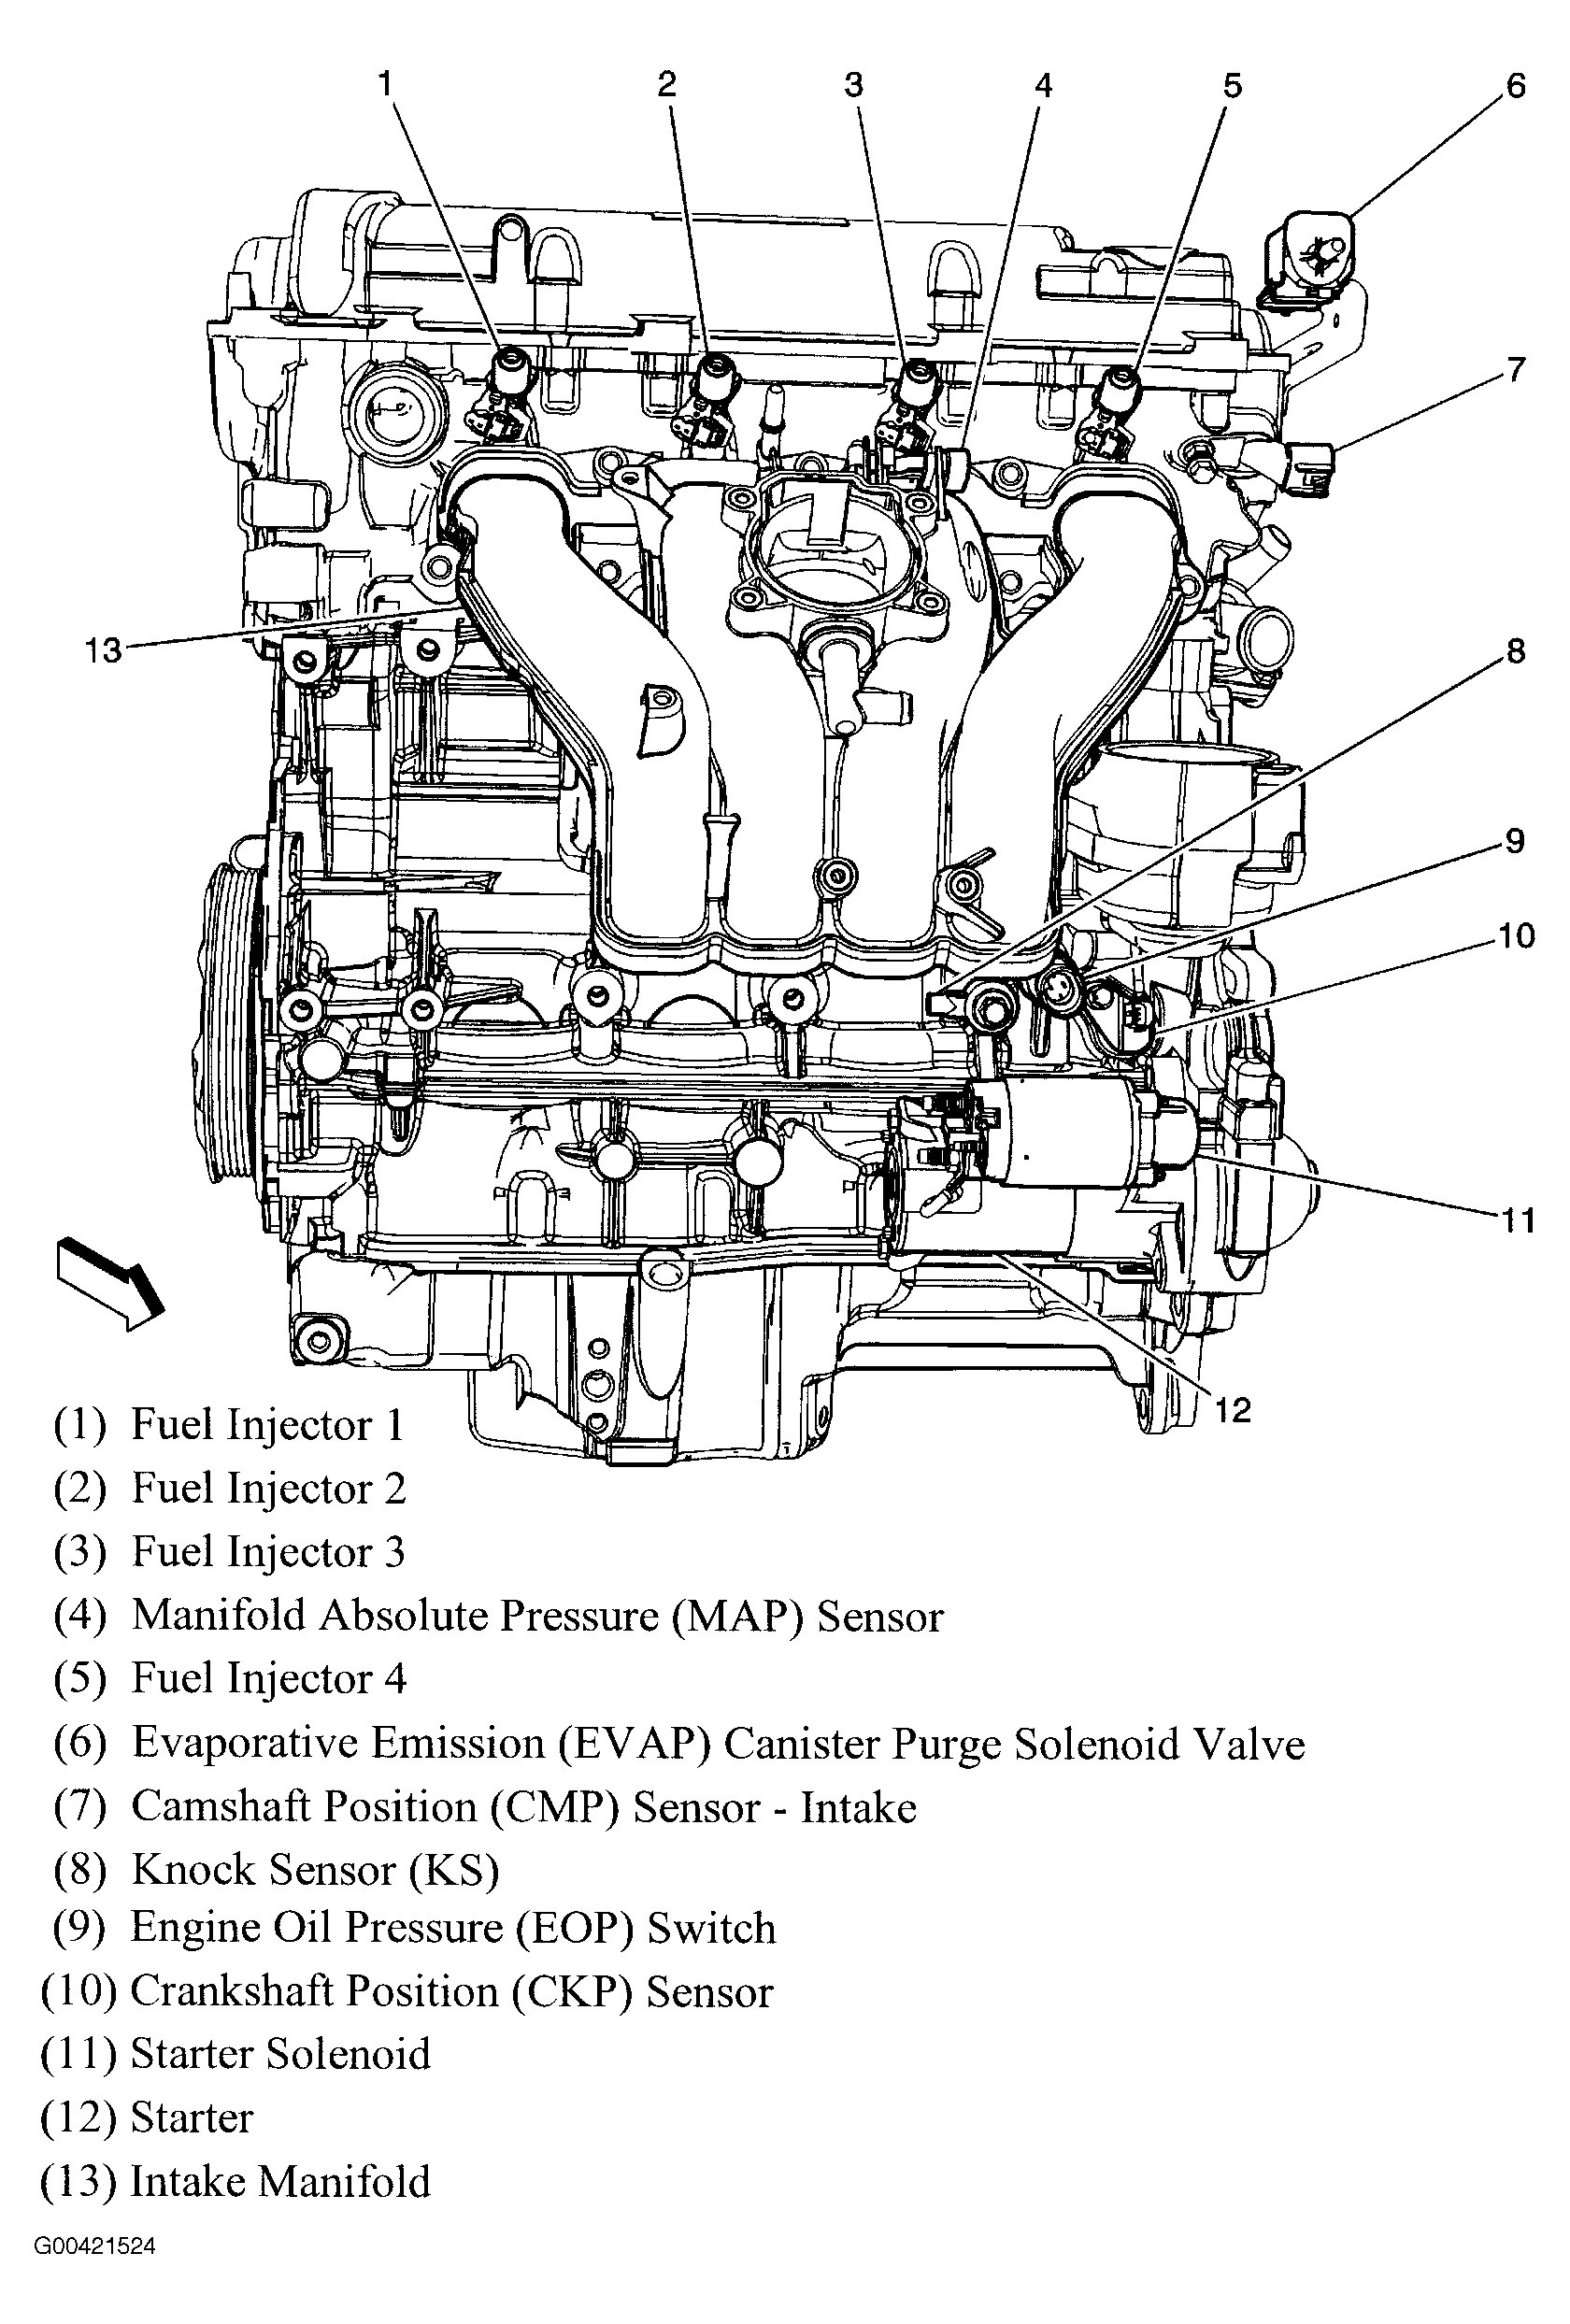 Gm 2 Ecotec Engine Specs